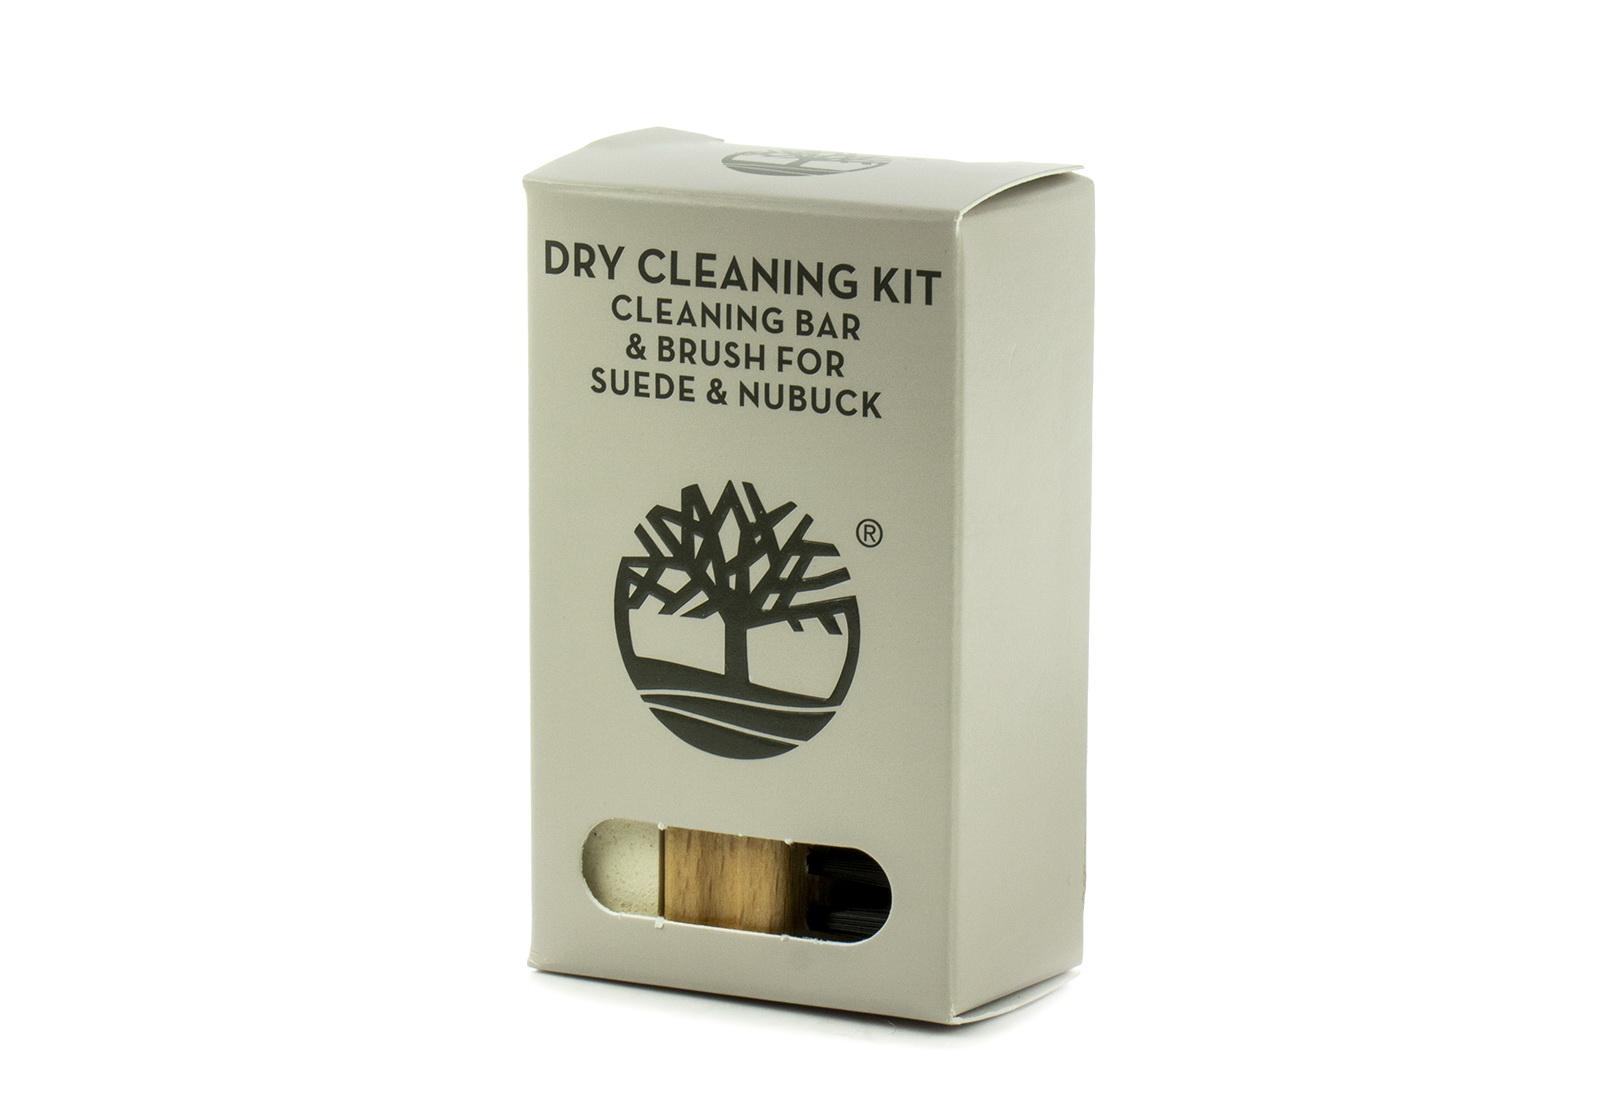 Dry Cleaning Kit